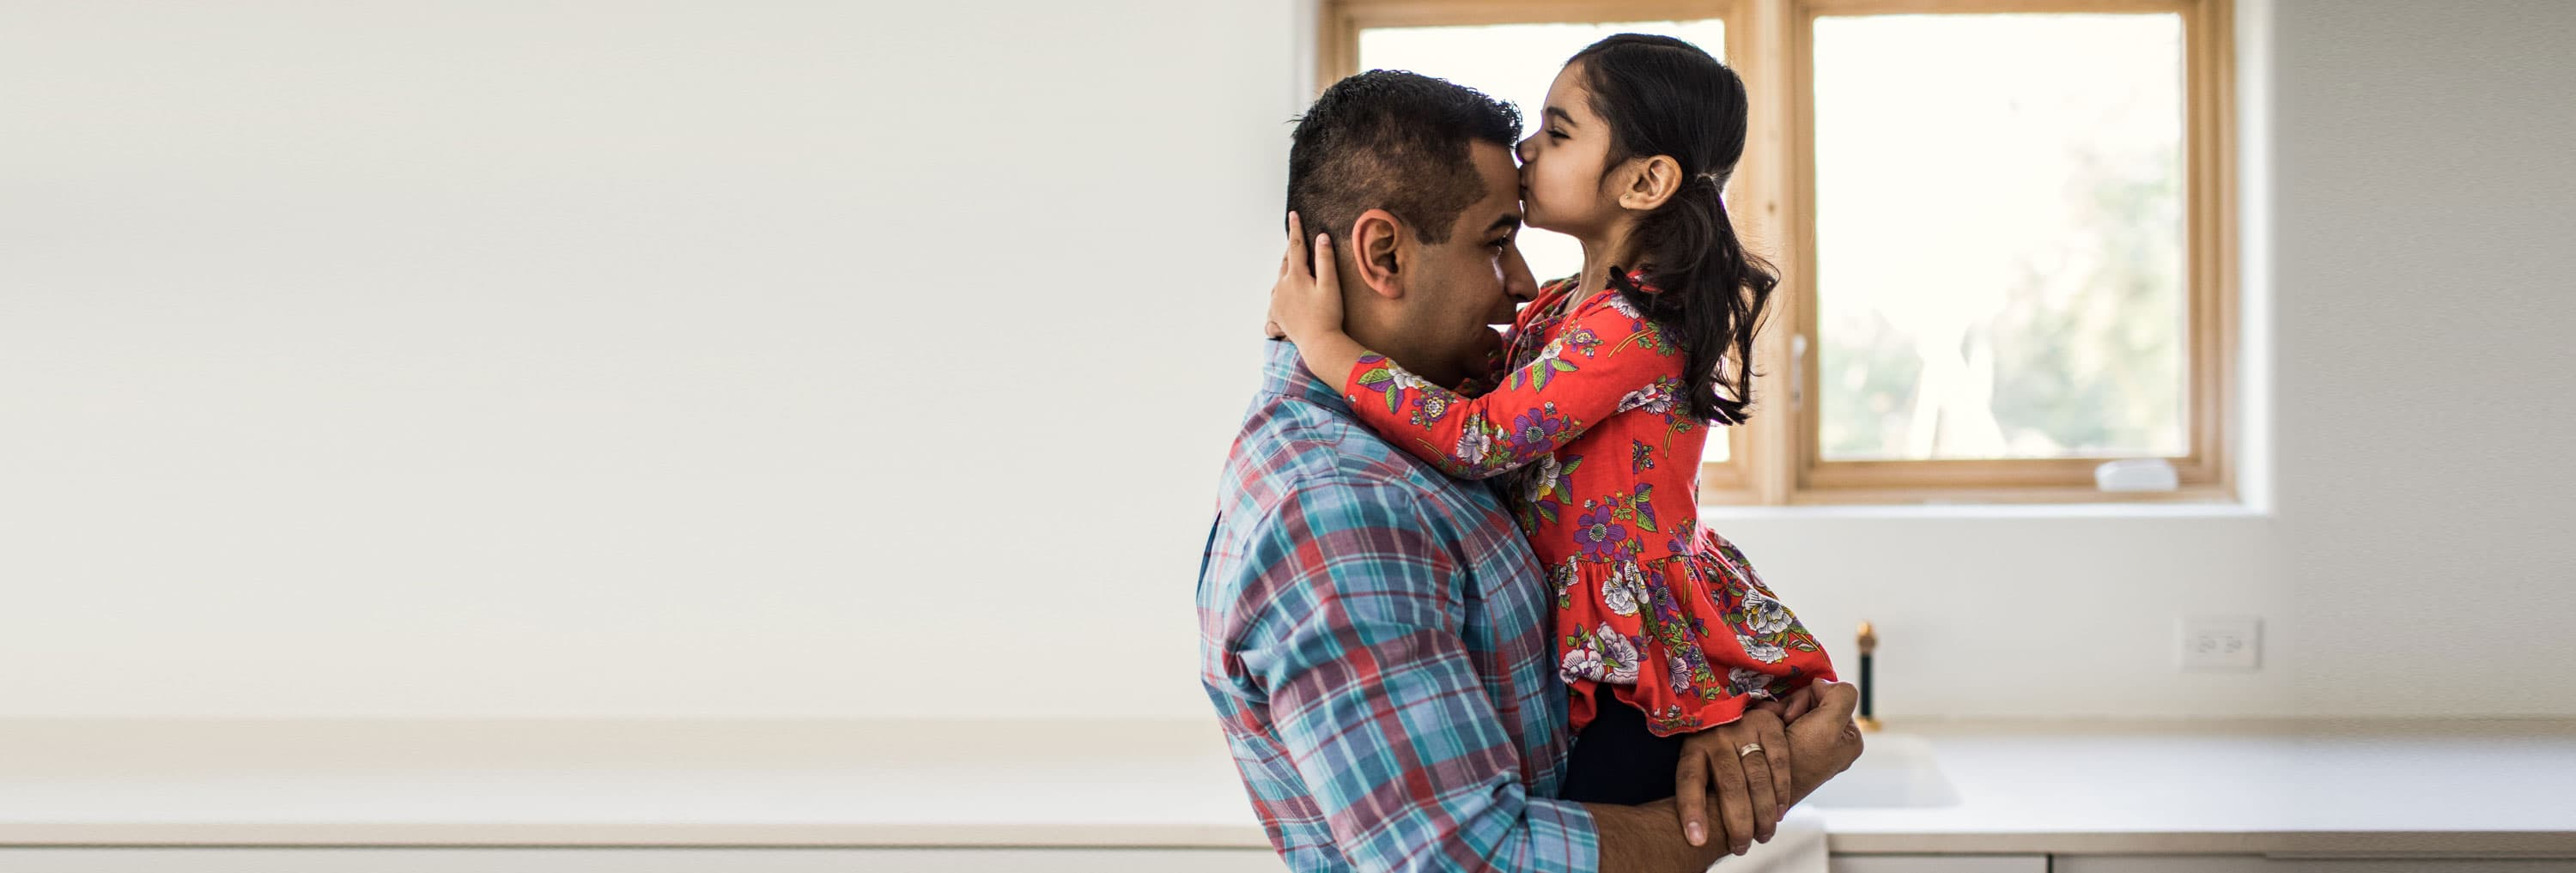 A little girl kissing her fathers forehead.